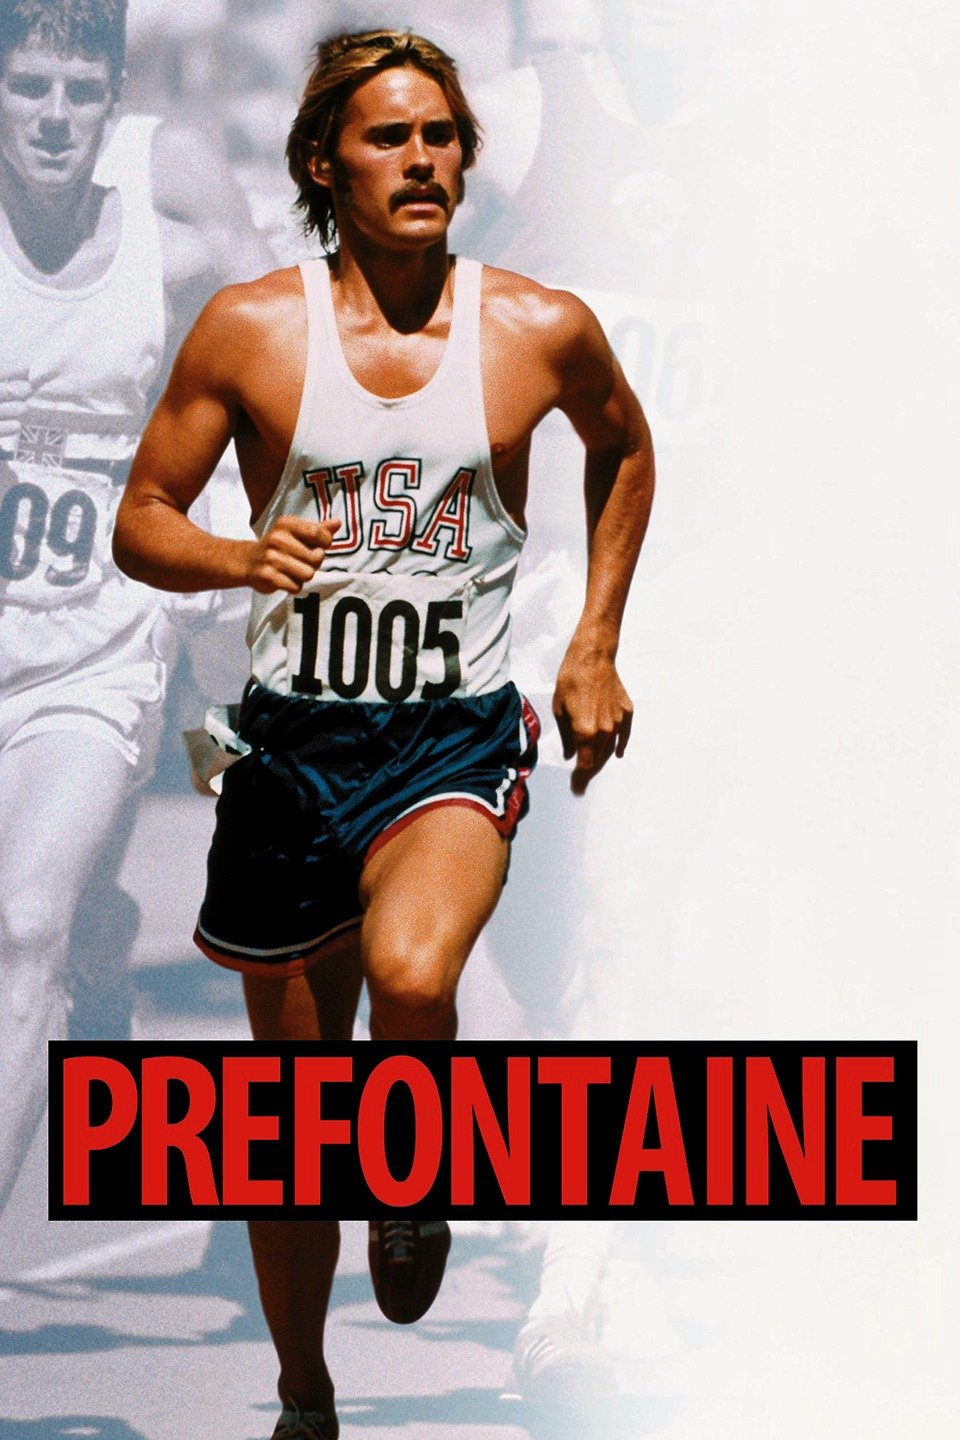 File:Prefontaine.jpg